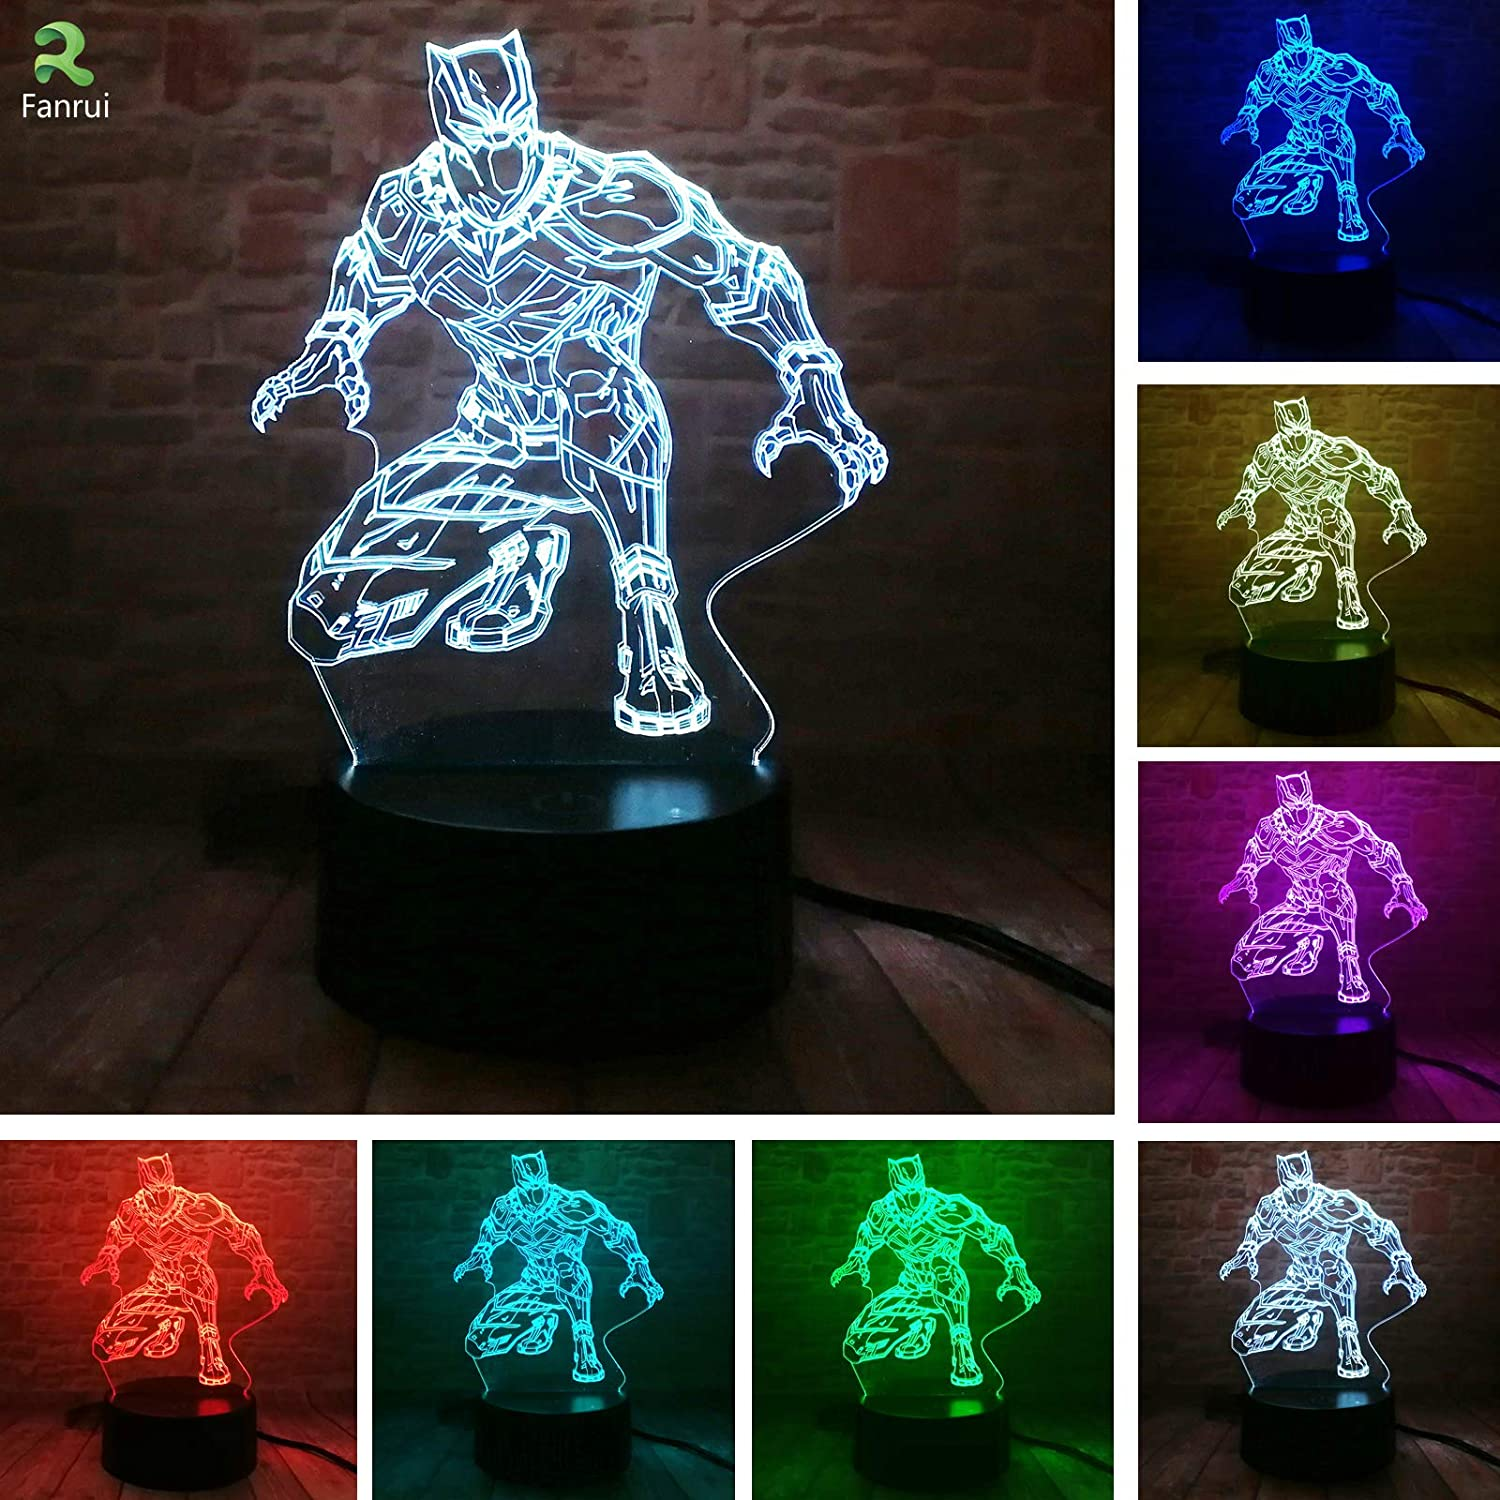 Fanrui Marvel Avengers Night Light - Black Panther Table Lamp - Marvel Superhero Action Figurines - Smart 16 Colors Change LED RGB Boys Man Bedroom Marvel Lantern Decor - Child Kids Xmas Toy Gifts